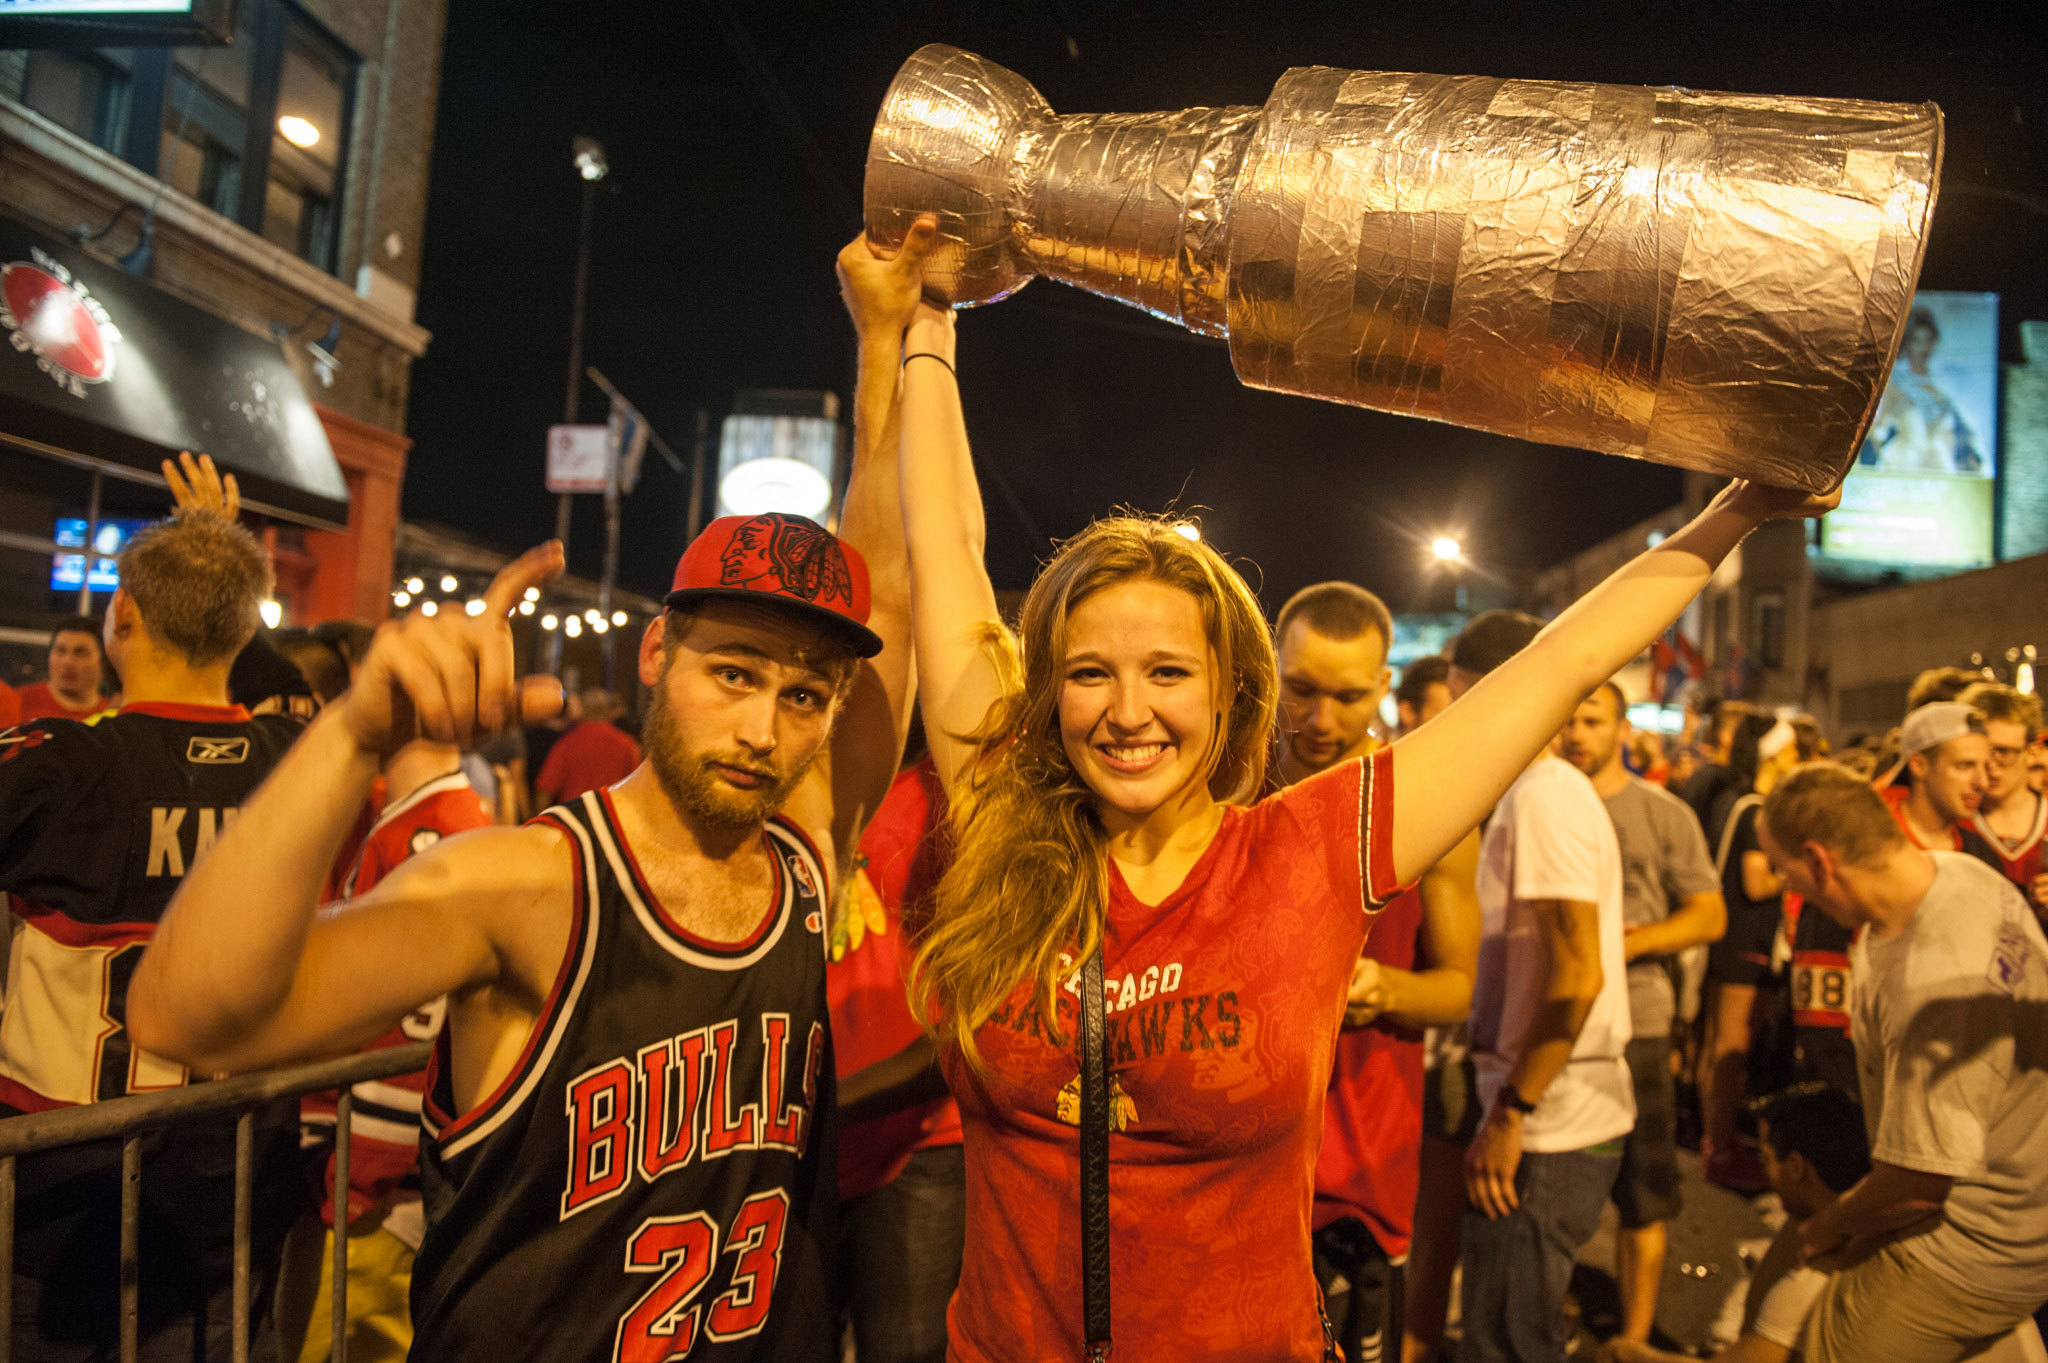 Stanley Cup celebration